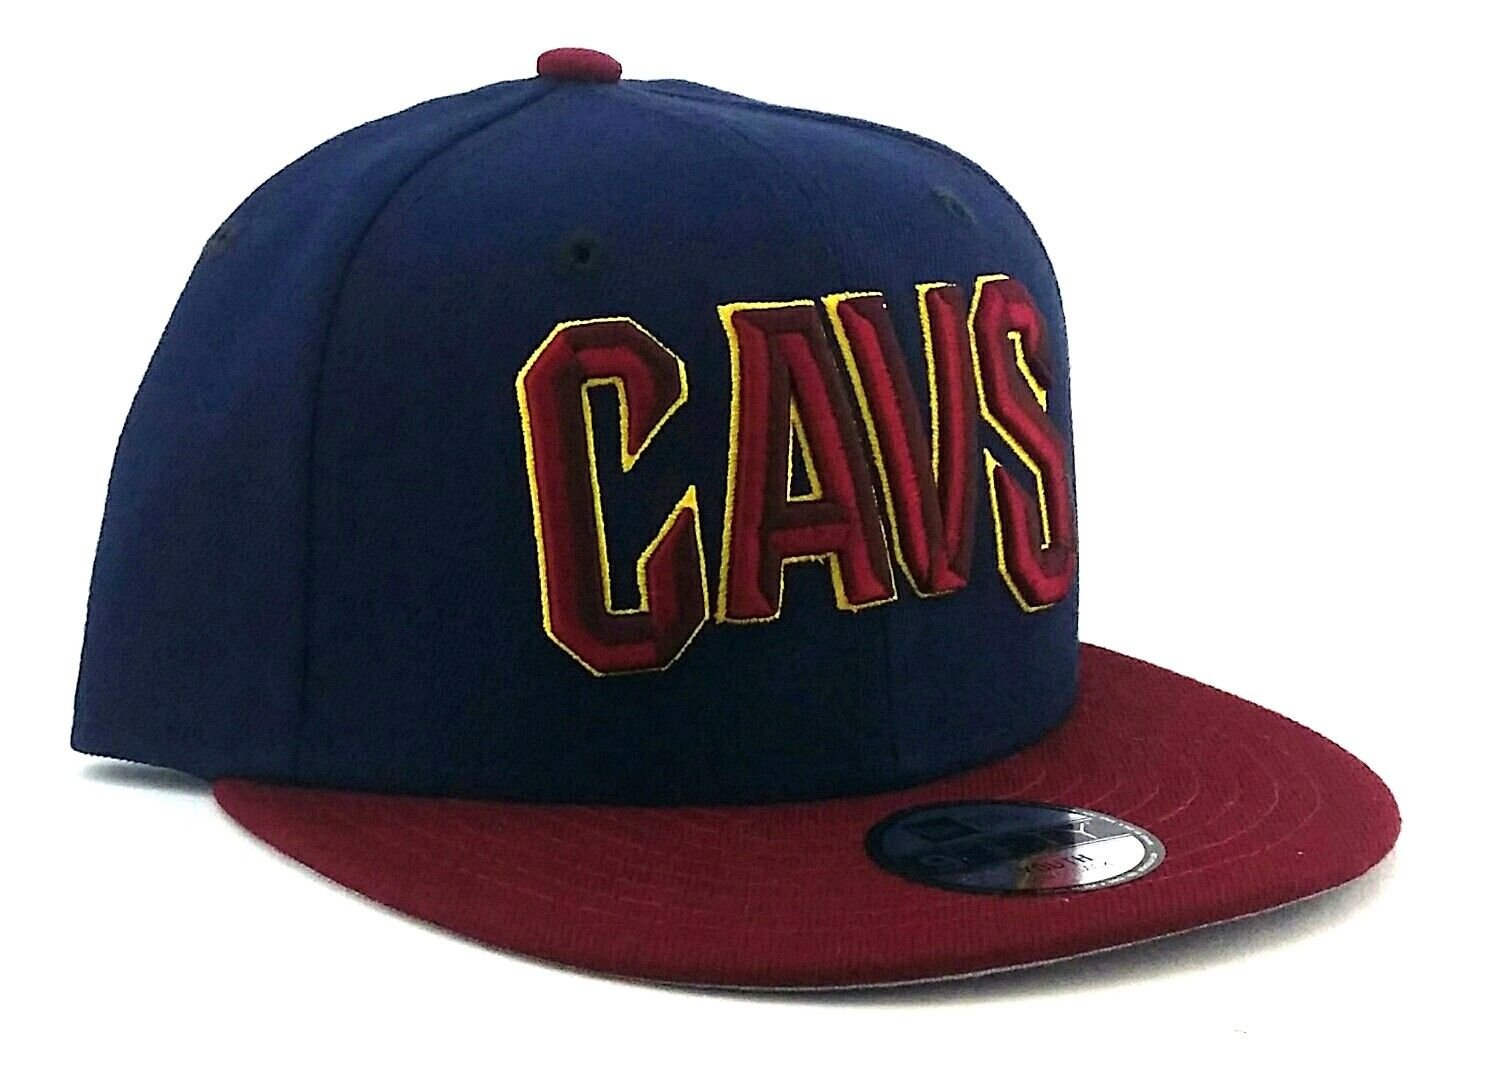 6532ec421f62f Amazon.com   New Era Cleveland Cavaliers Youth Kids 9Fifty Jr Blue Wine Red  Gold Snapback Hat Cap   Sports   Outdoors